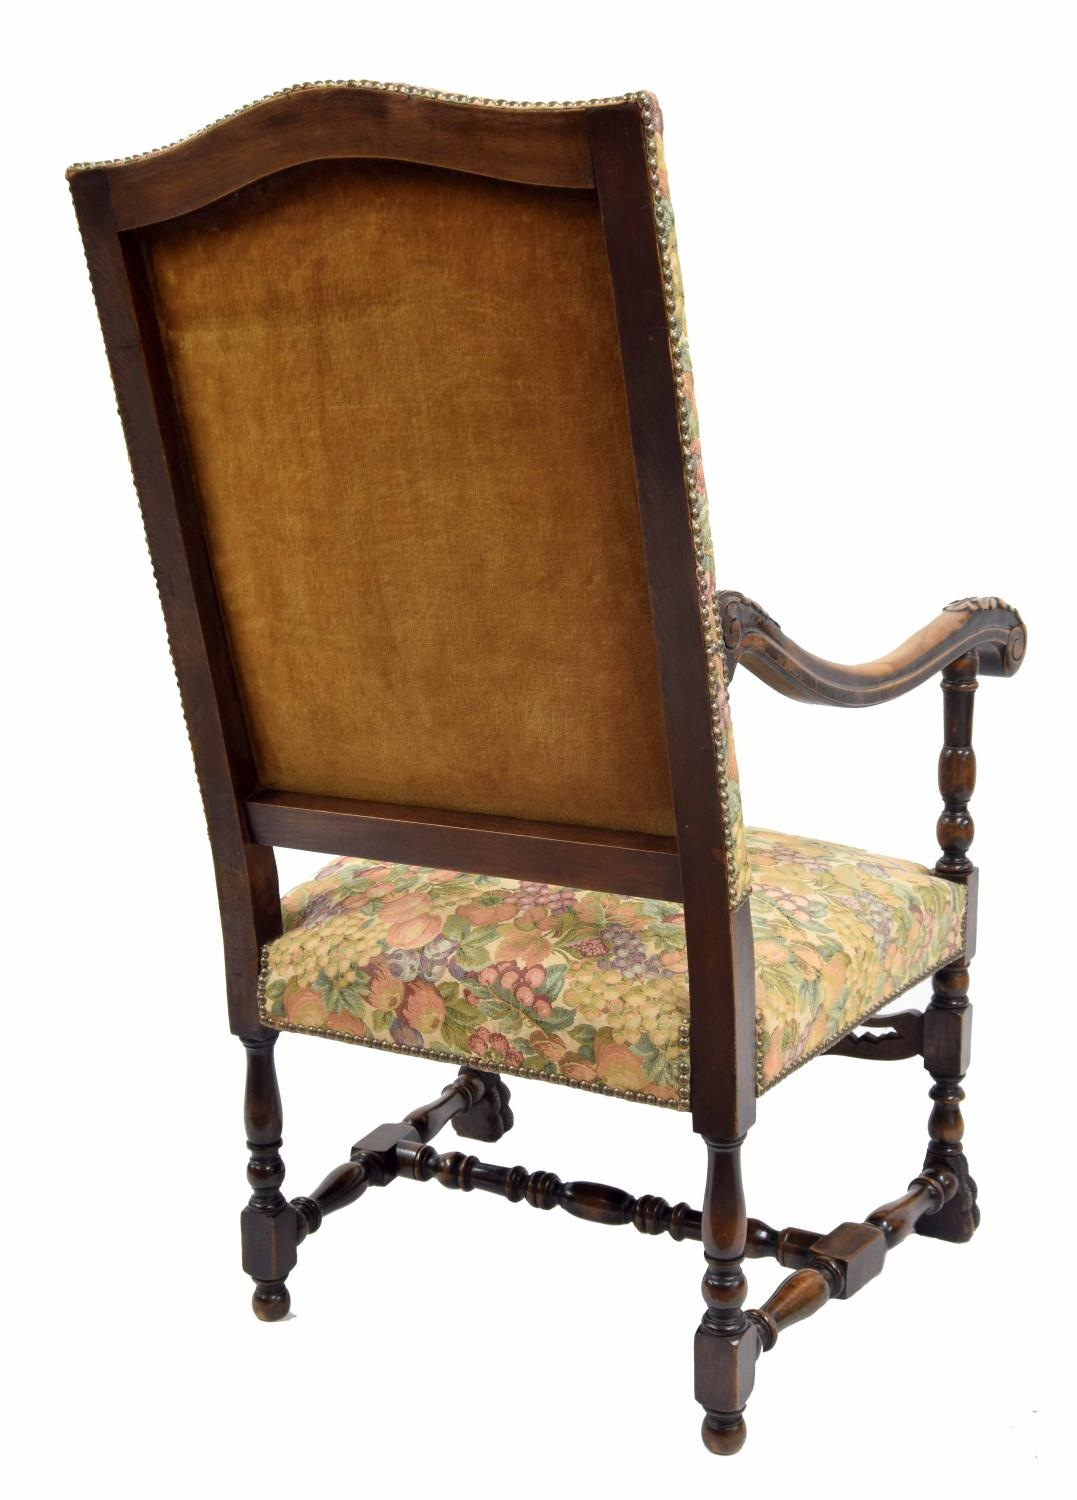 Carolean style upholstered throne armchair, the padded back and stuffover seat with modern - Image 2 of 2